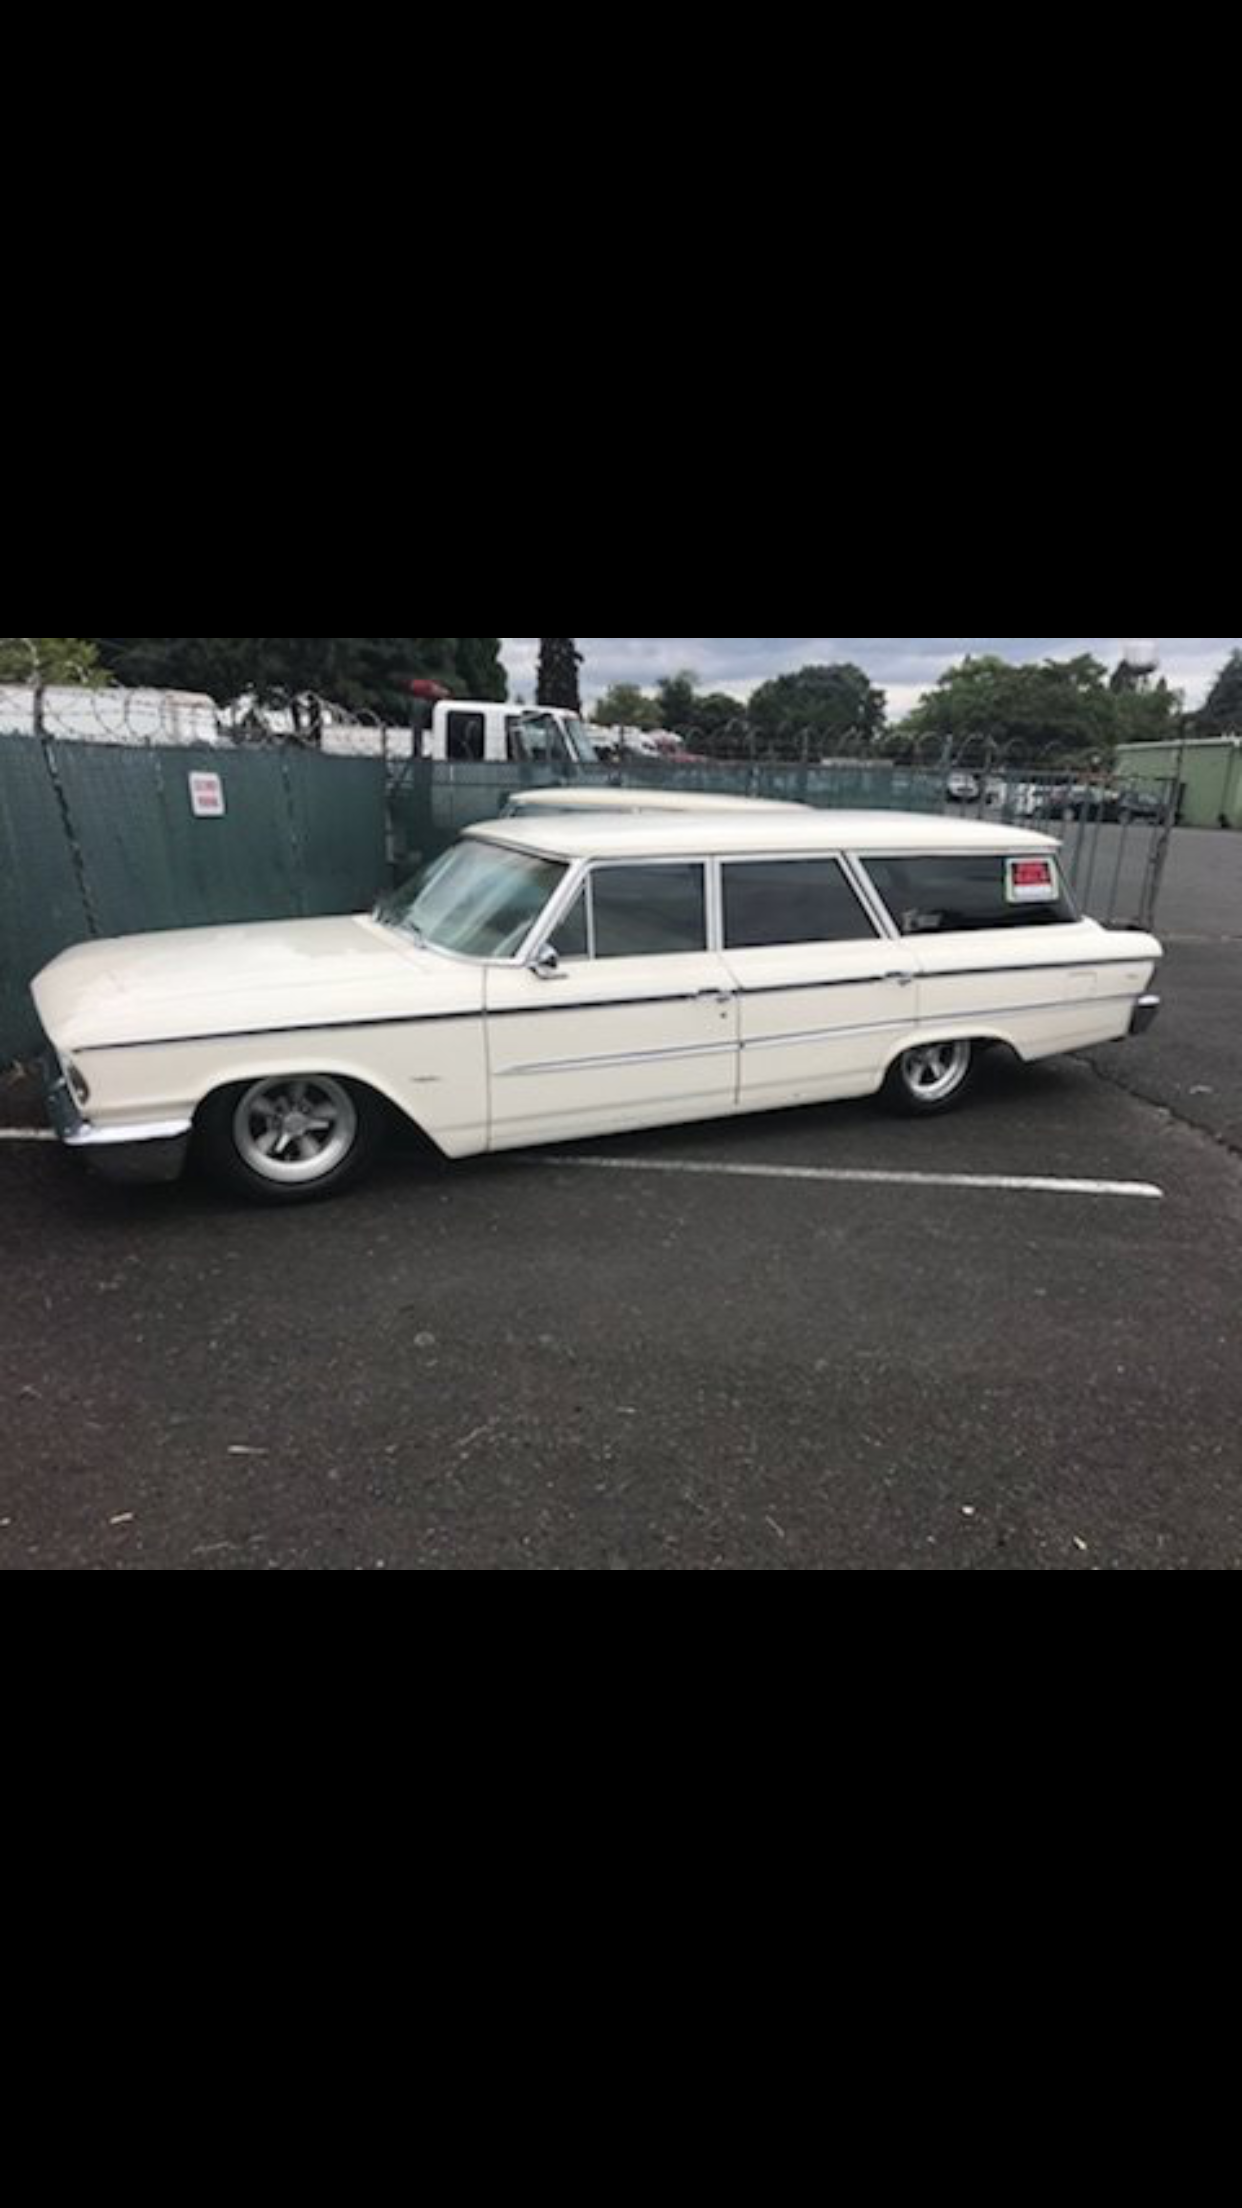 Pin By Robert Hall On 1964 Ford Galaxy Station Wagon Cars Trucks Station Wagon 1964 Ford